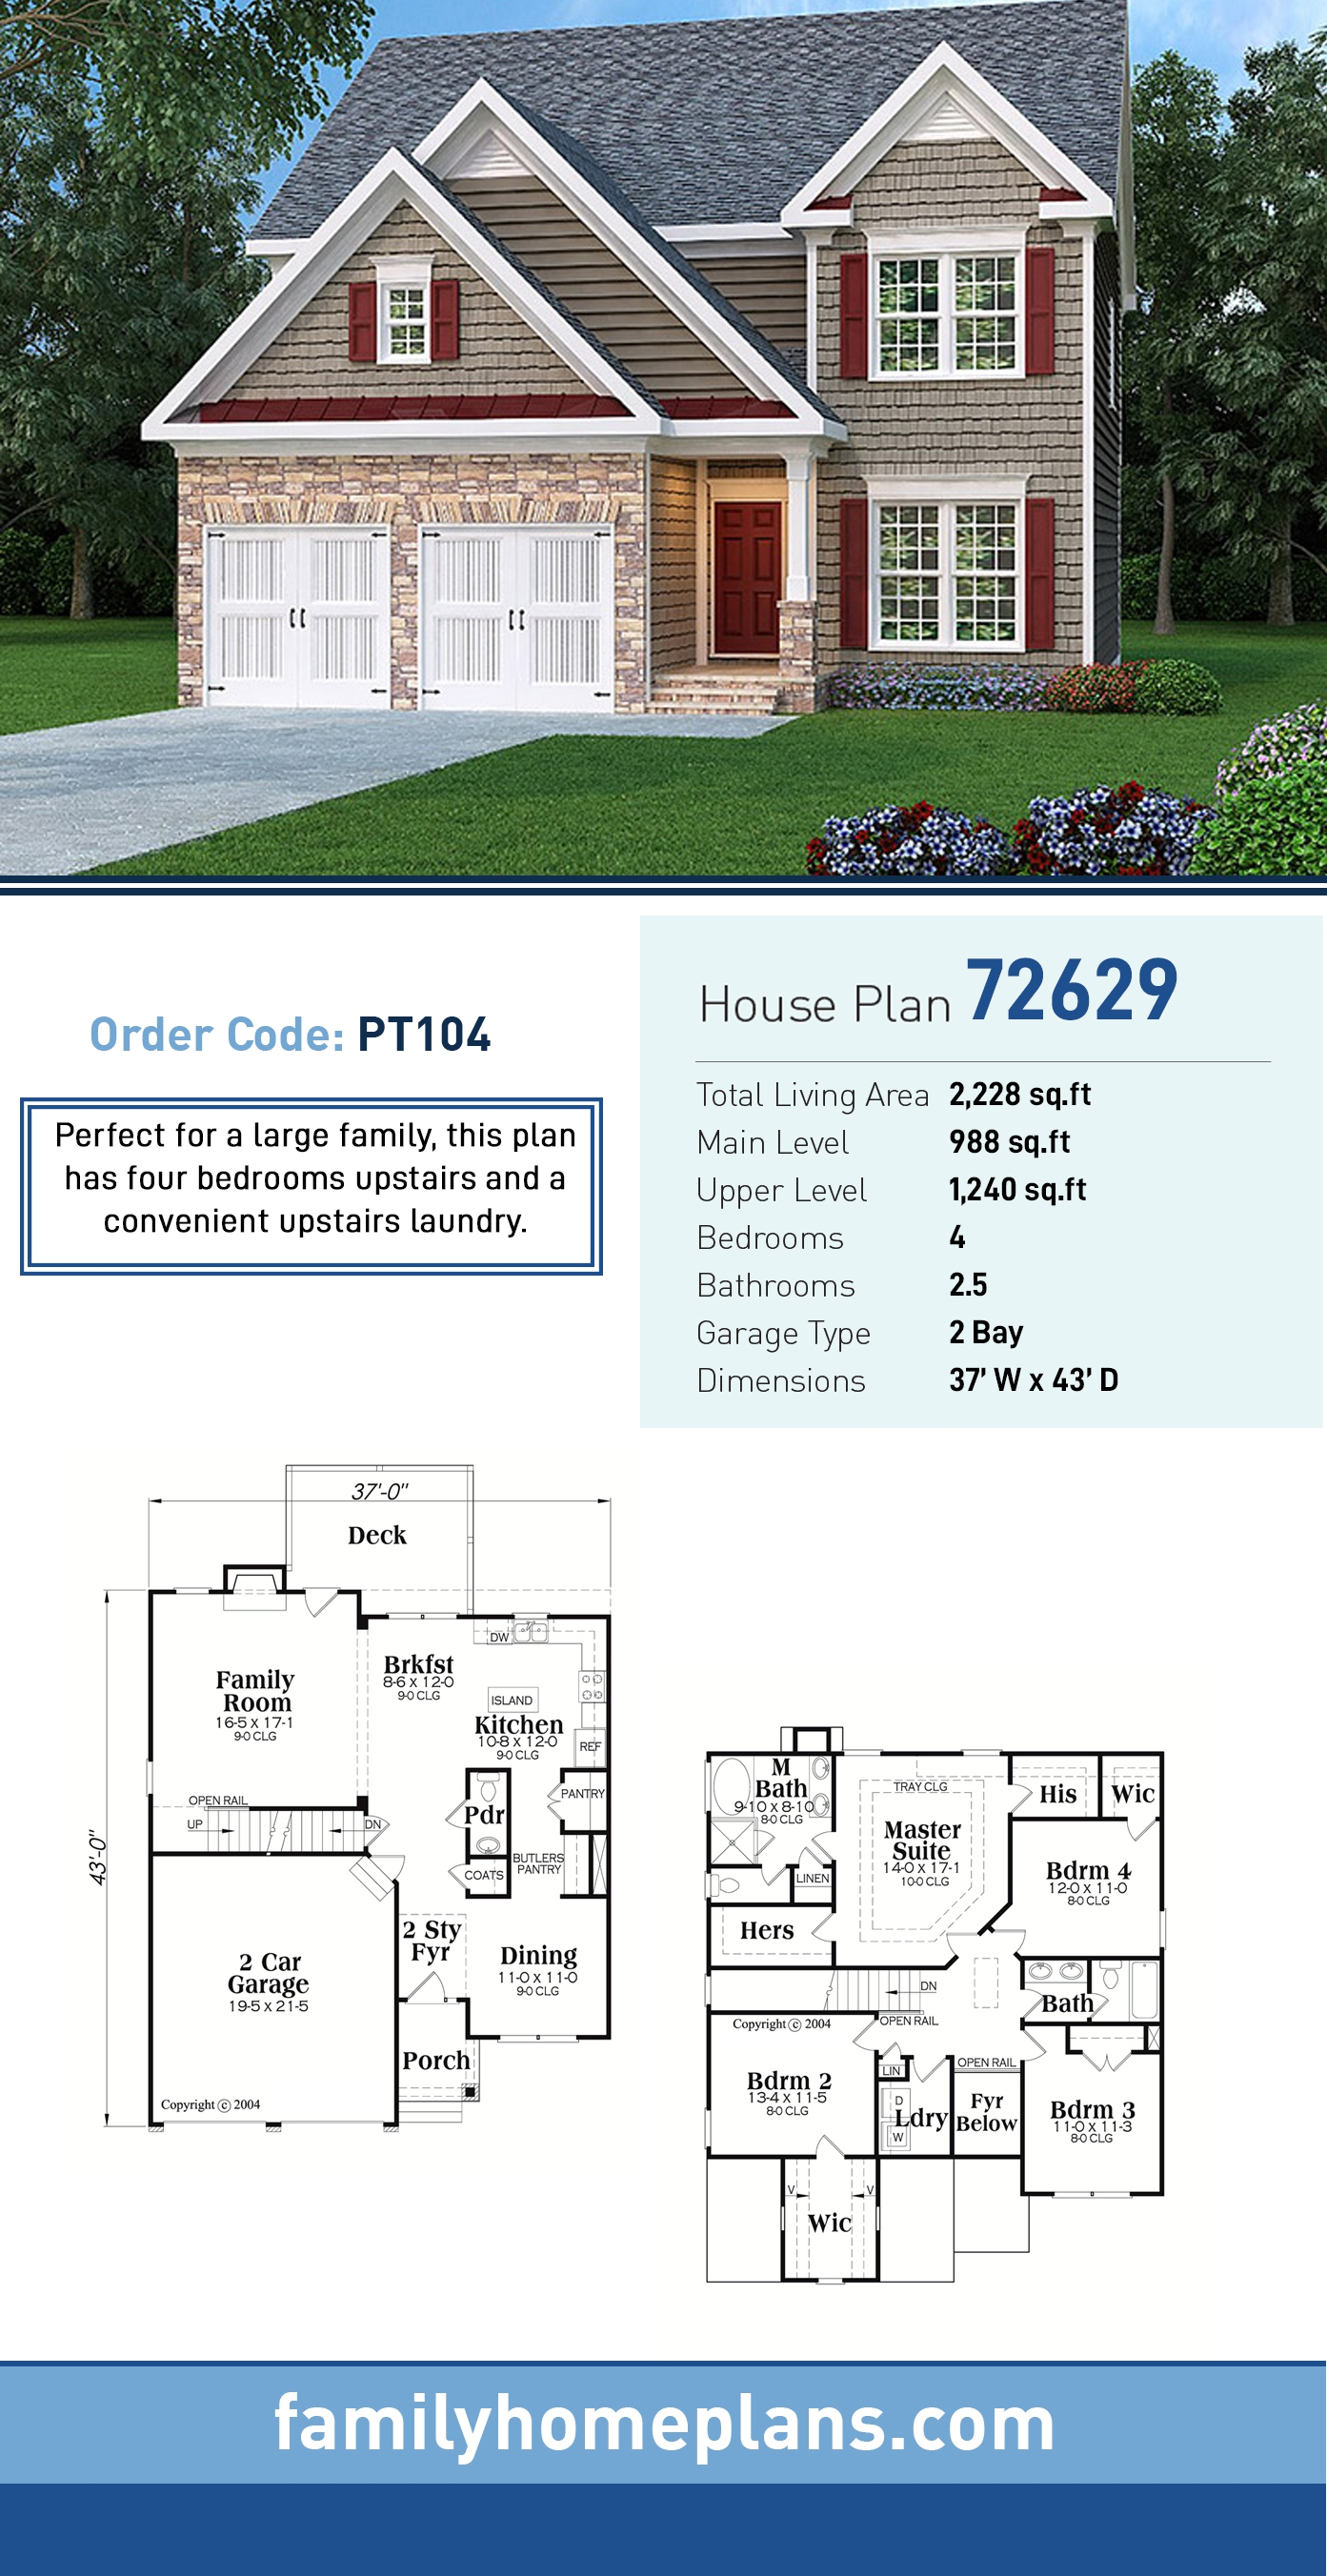 House Plan 72629 with 4 Beds, 3 Baths, 2 Car Garage